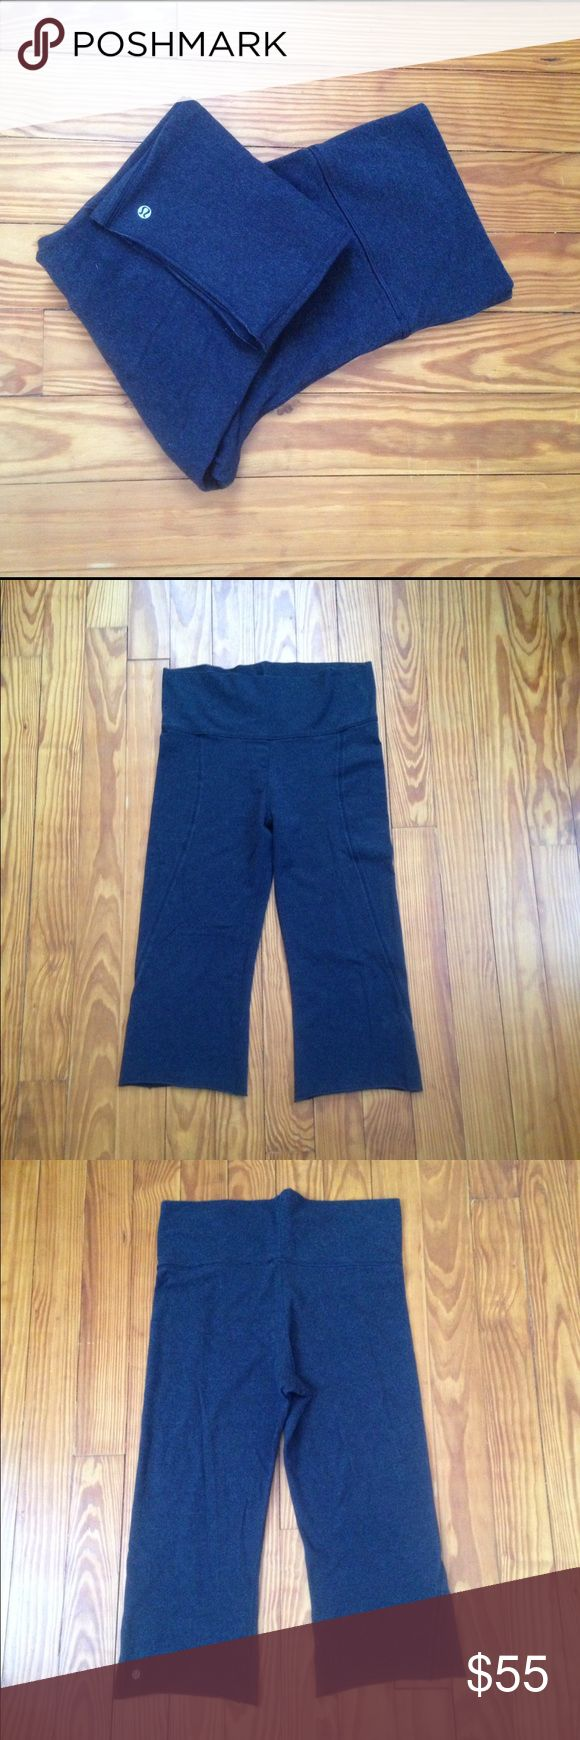 Lululemon Athletica Charcoal Leggings Cropped with curved seams down the front. lululemon athletica Pants Capris